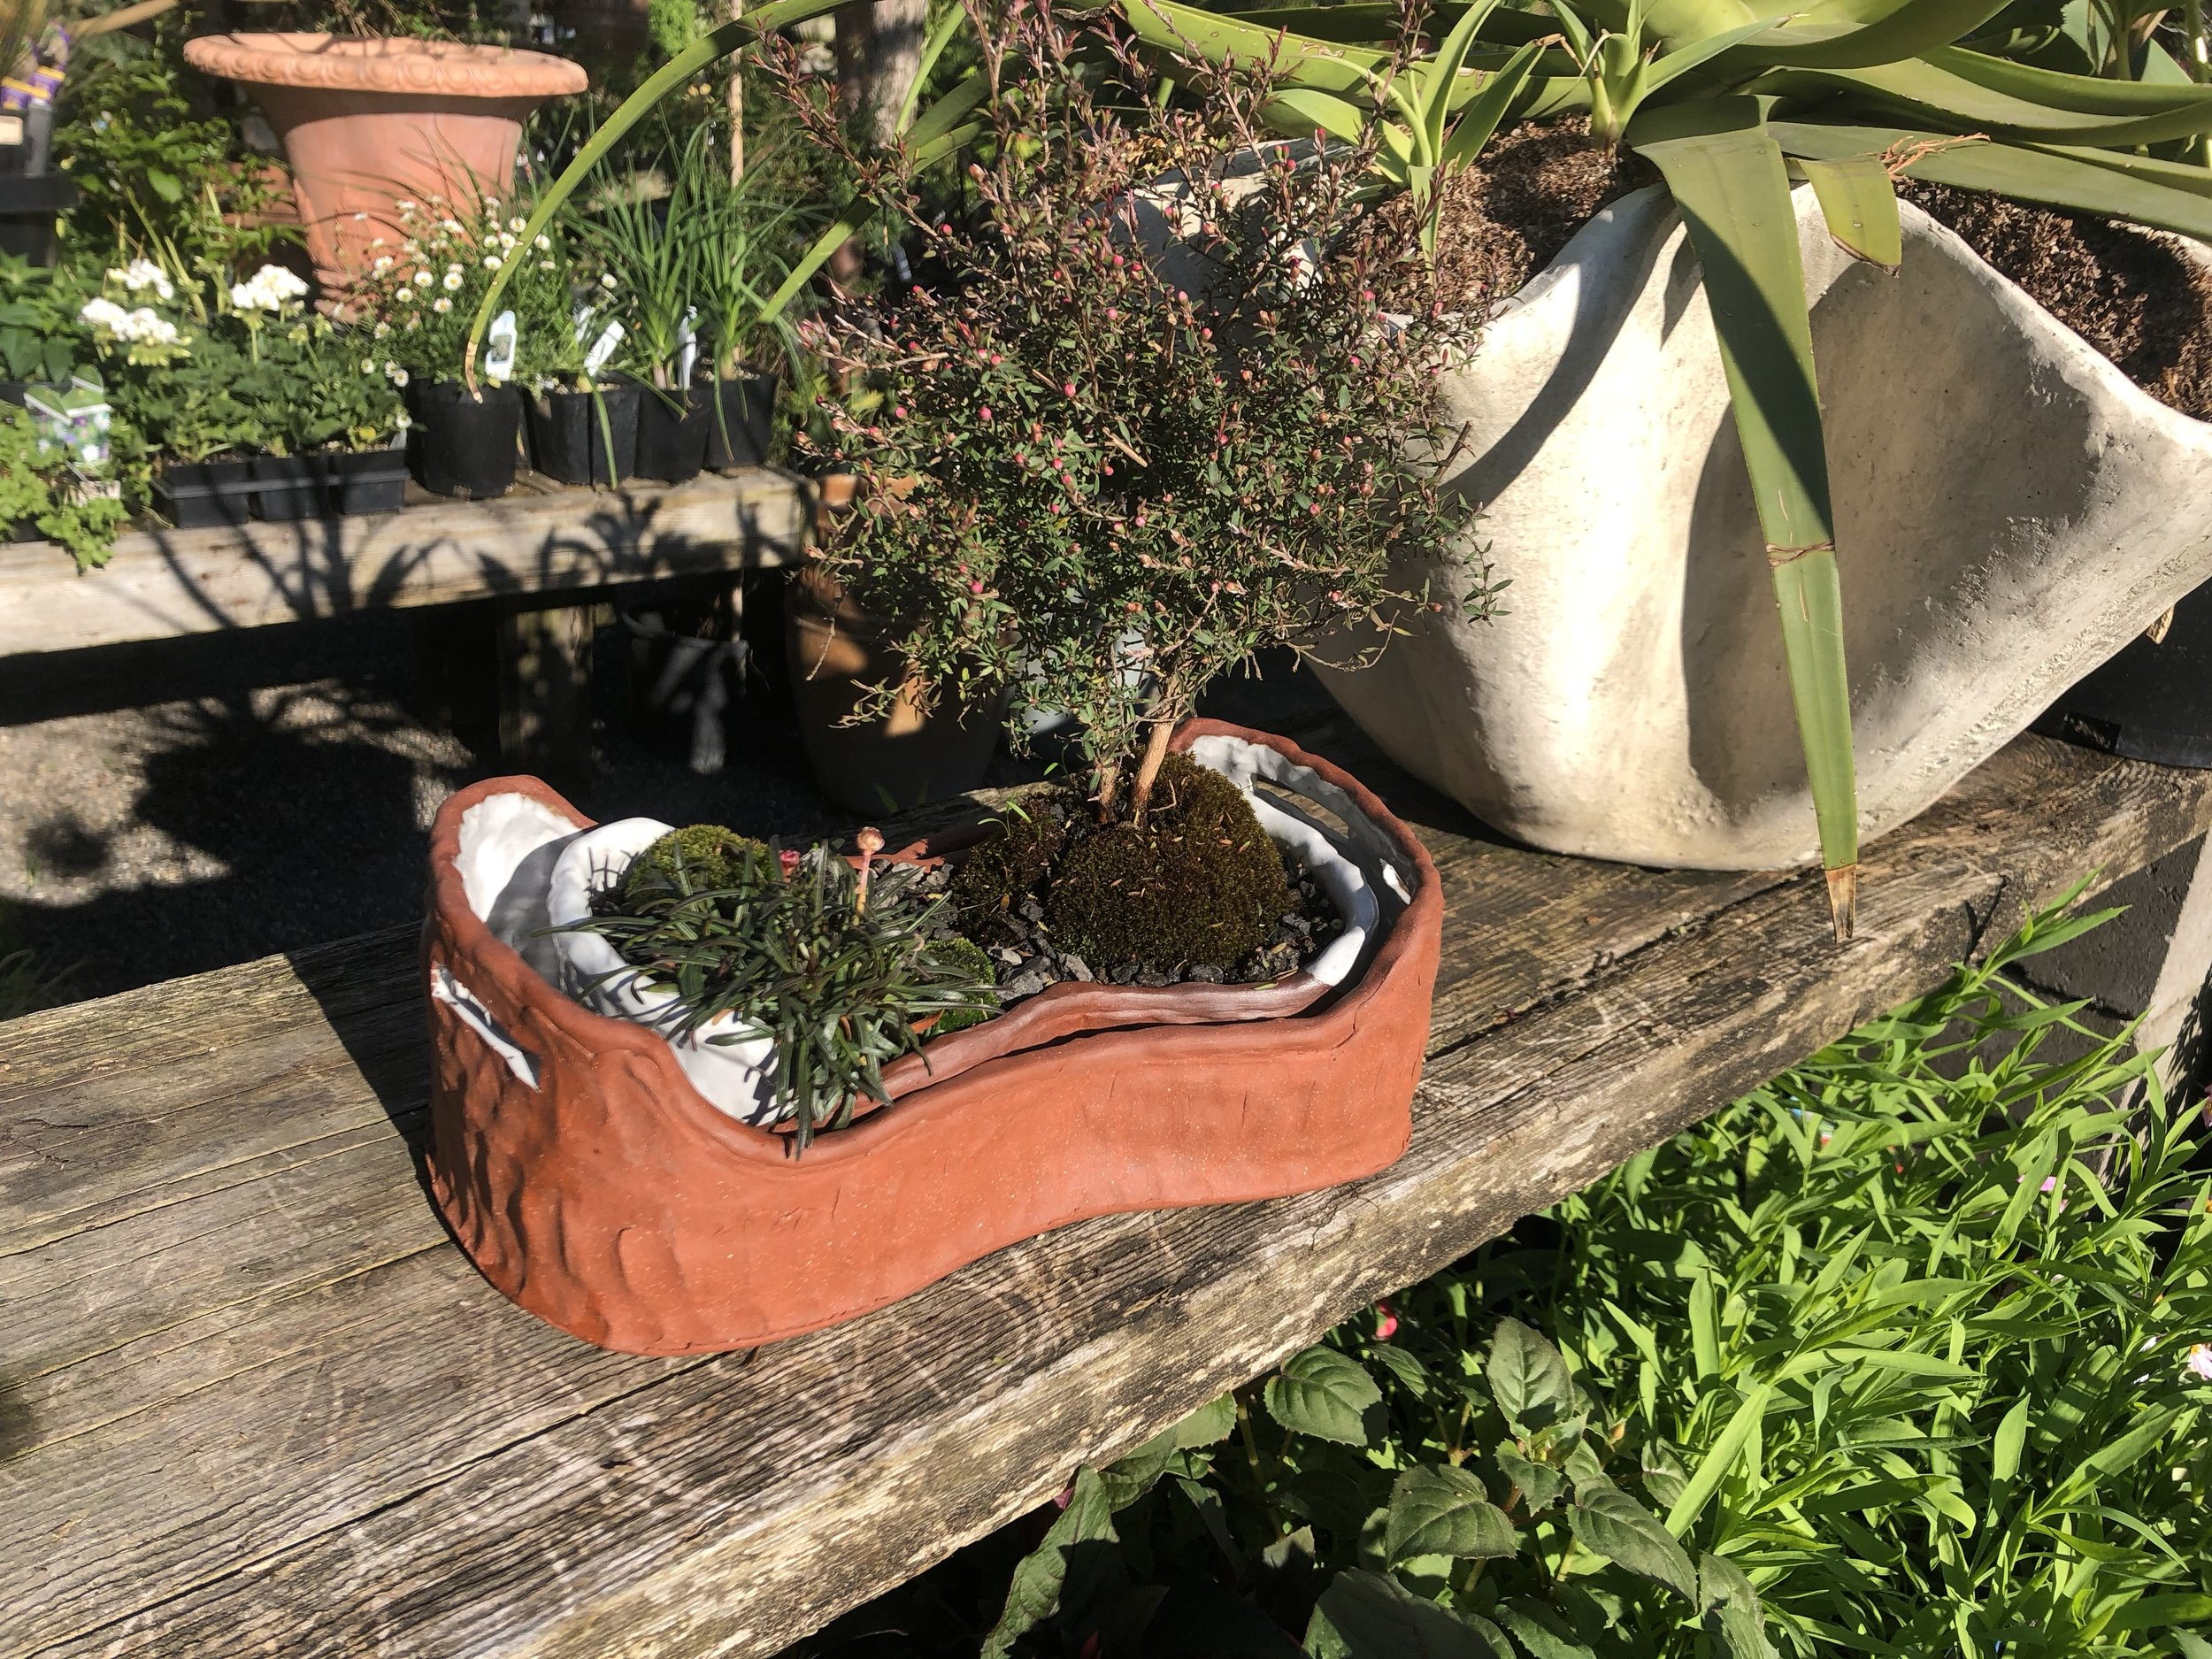 Paige Wright vessels are available for purchase, planted or unplanted at the nursery.